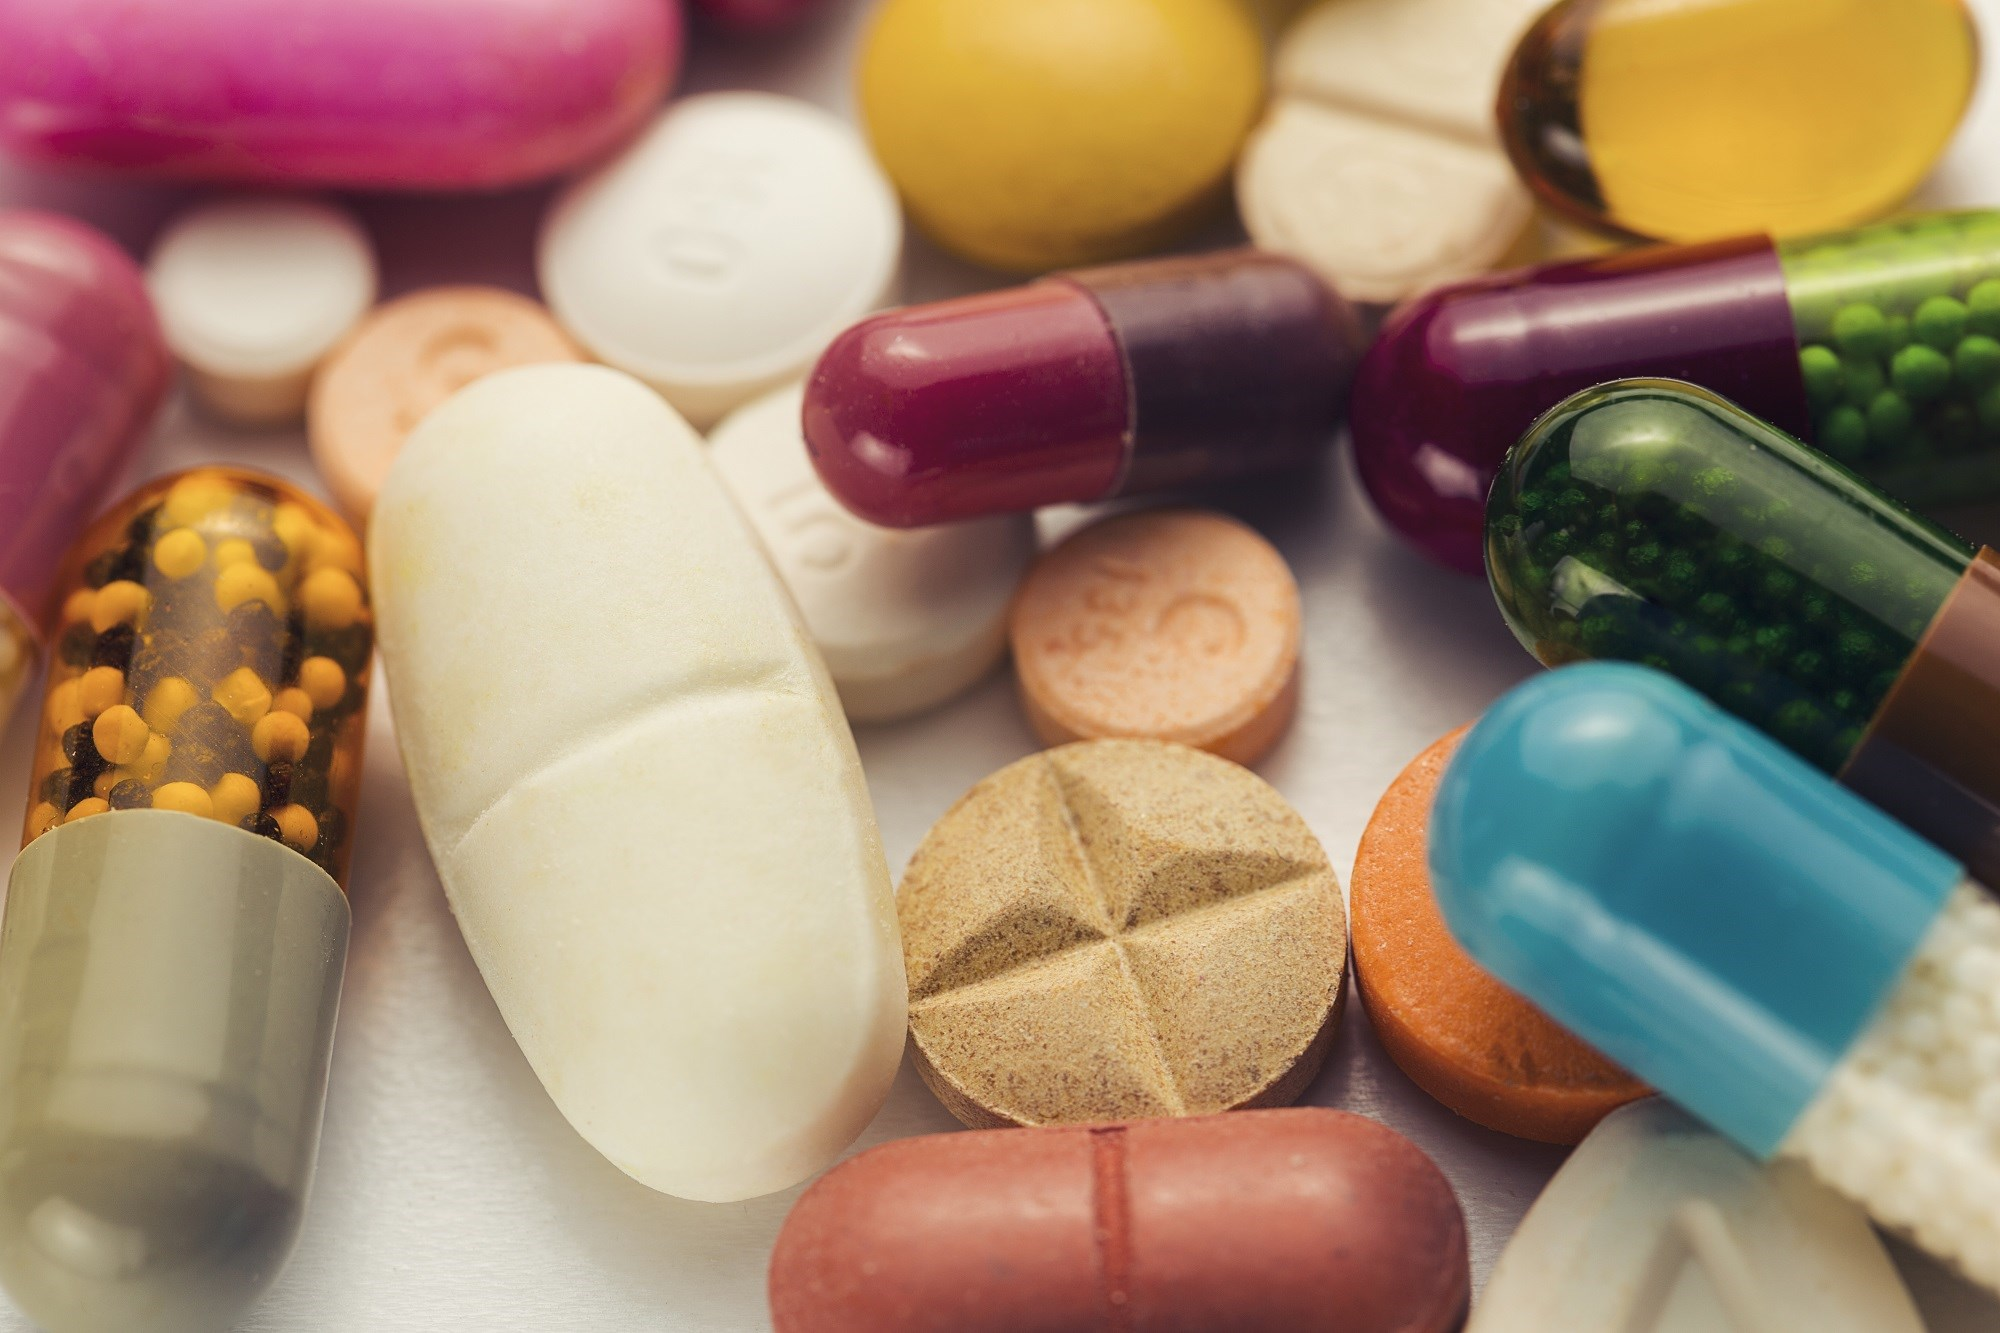 FDA: New Plan for Regulations, Oversight of Dietary Supplement Industry